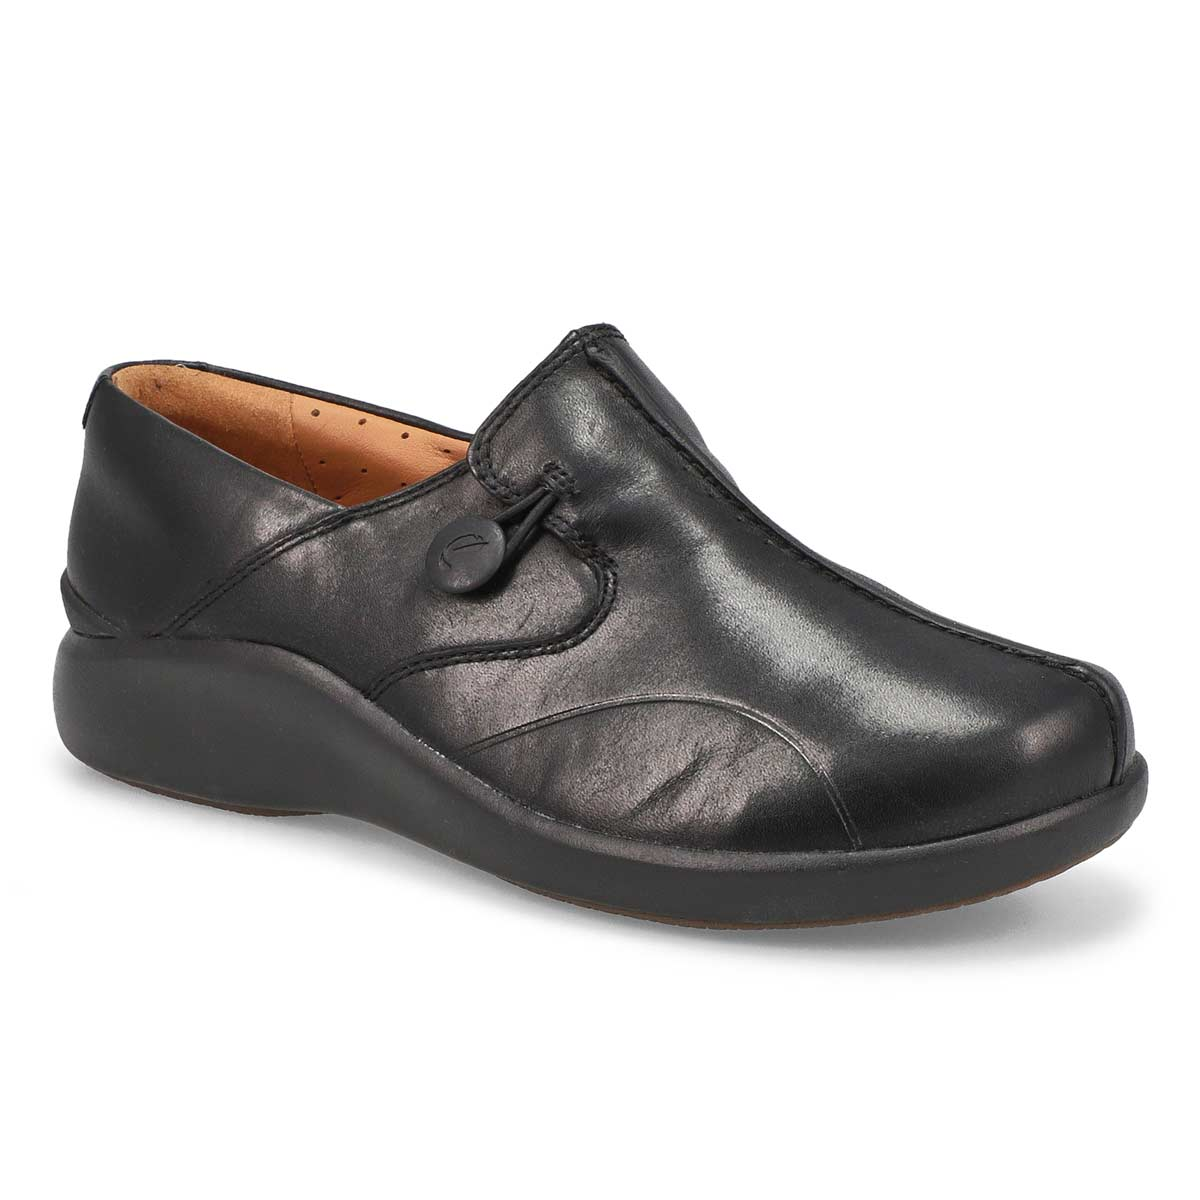 Lds Un Loop 2 Walk blk casual shoe-WIDE